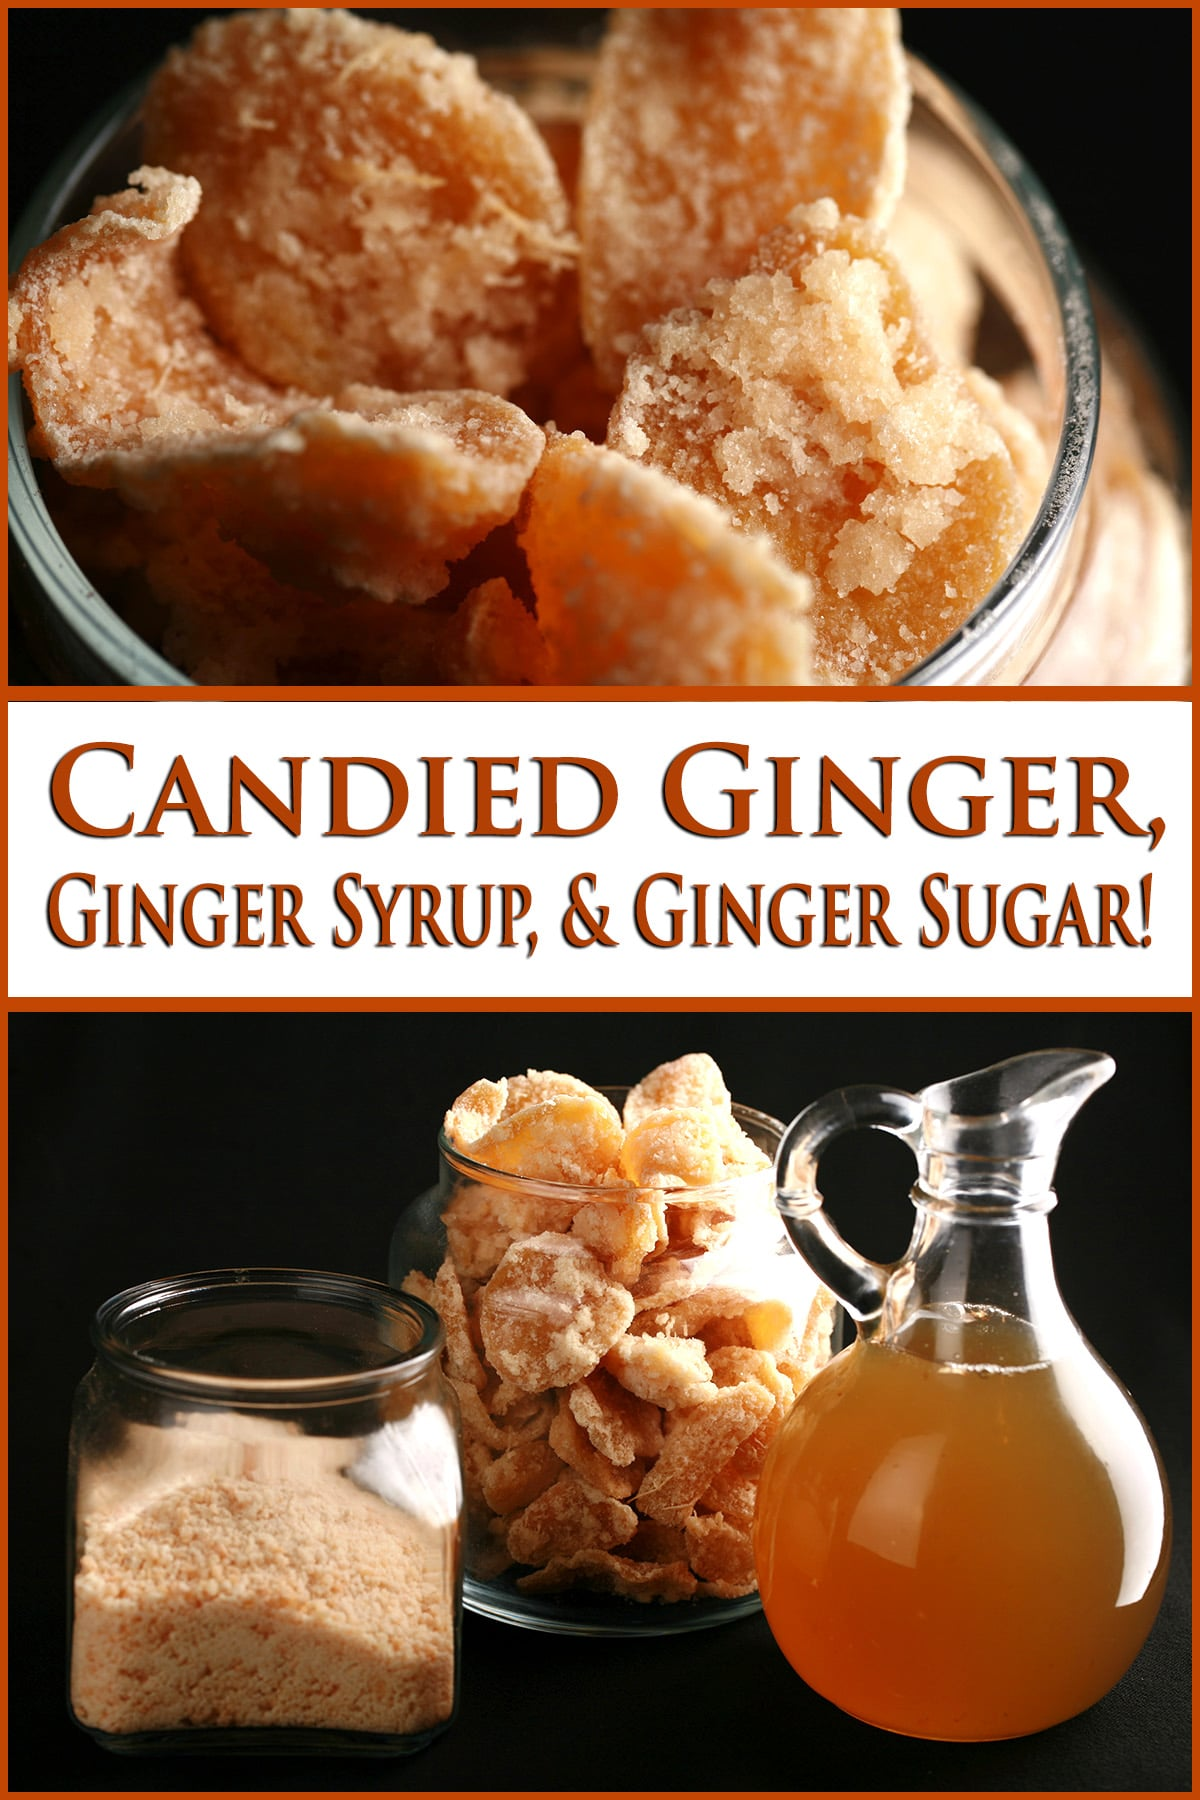 A glass jar of ginger sugar, a taller glass jar filled with crystallized ginger, and a small bottle of ginger syrup. Brown text overlay identifies these items.